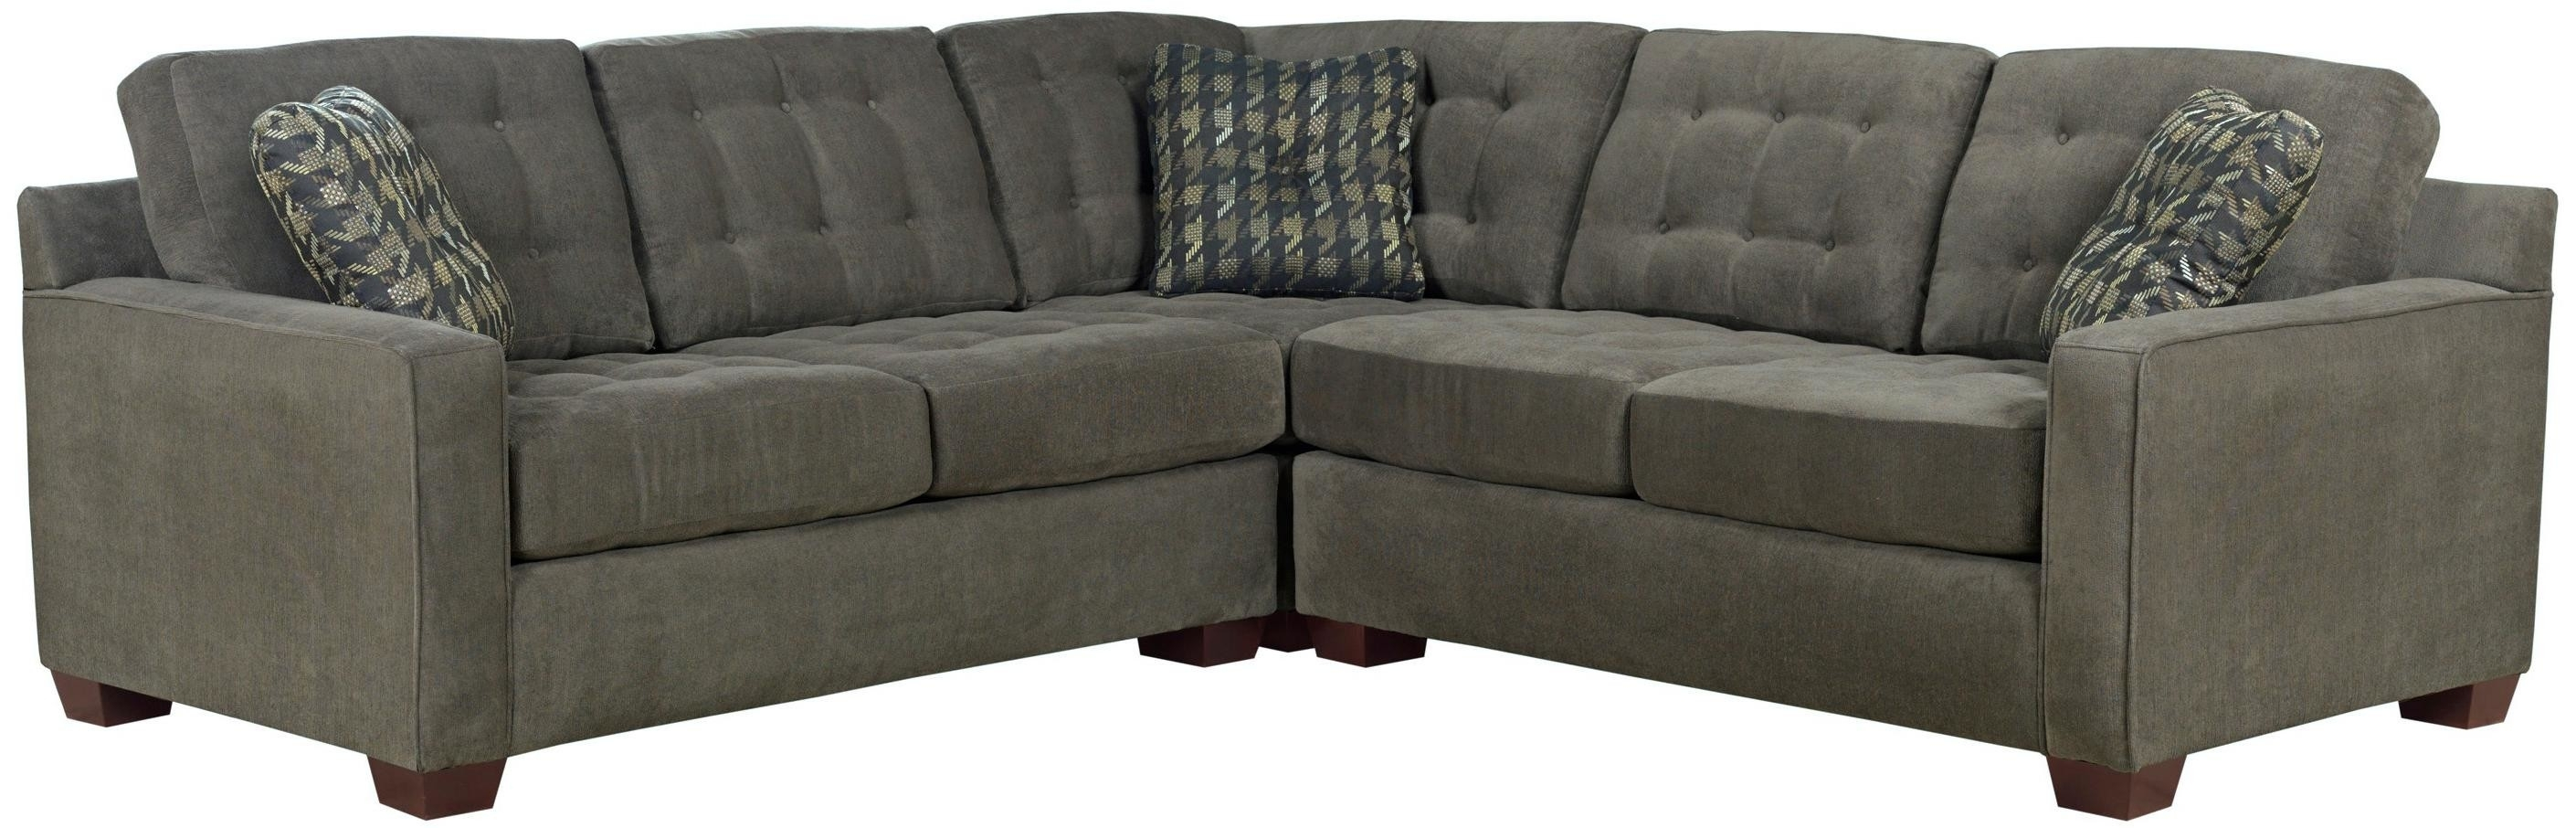 Homemakers Furniture Des Moines Iowa inside Homemakers Sectional Sofas (Image 4 of 10)